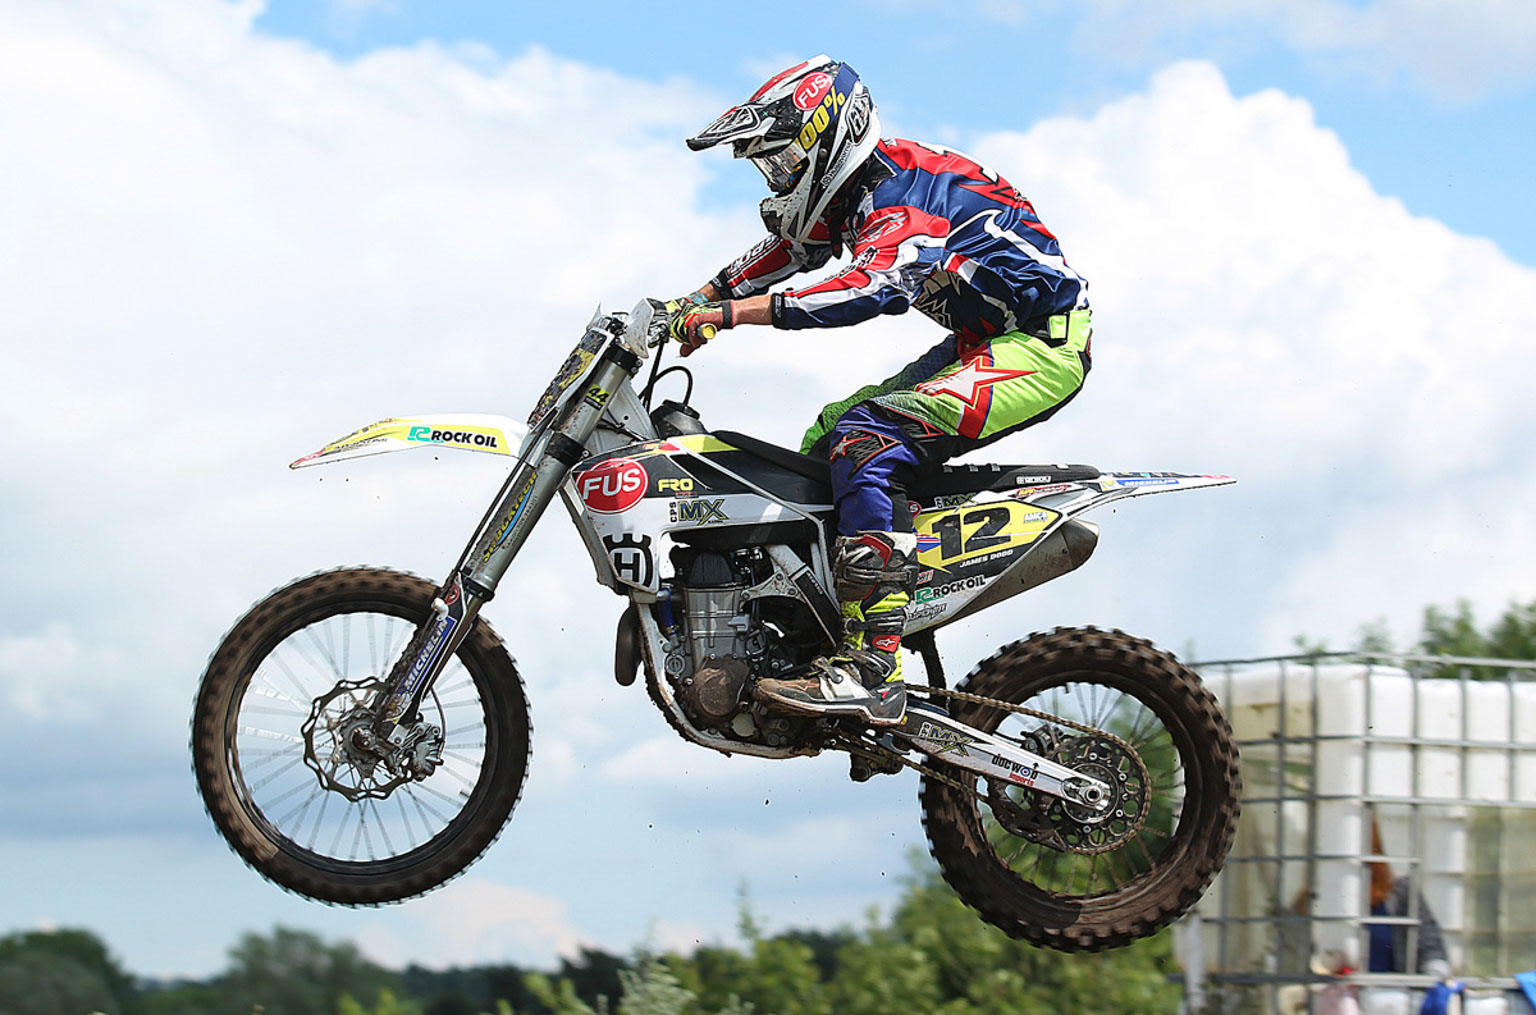 James Dodd, 4th in MX1